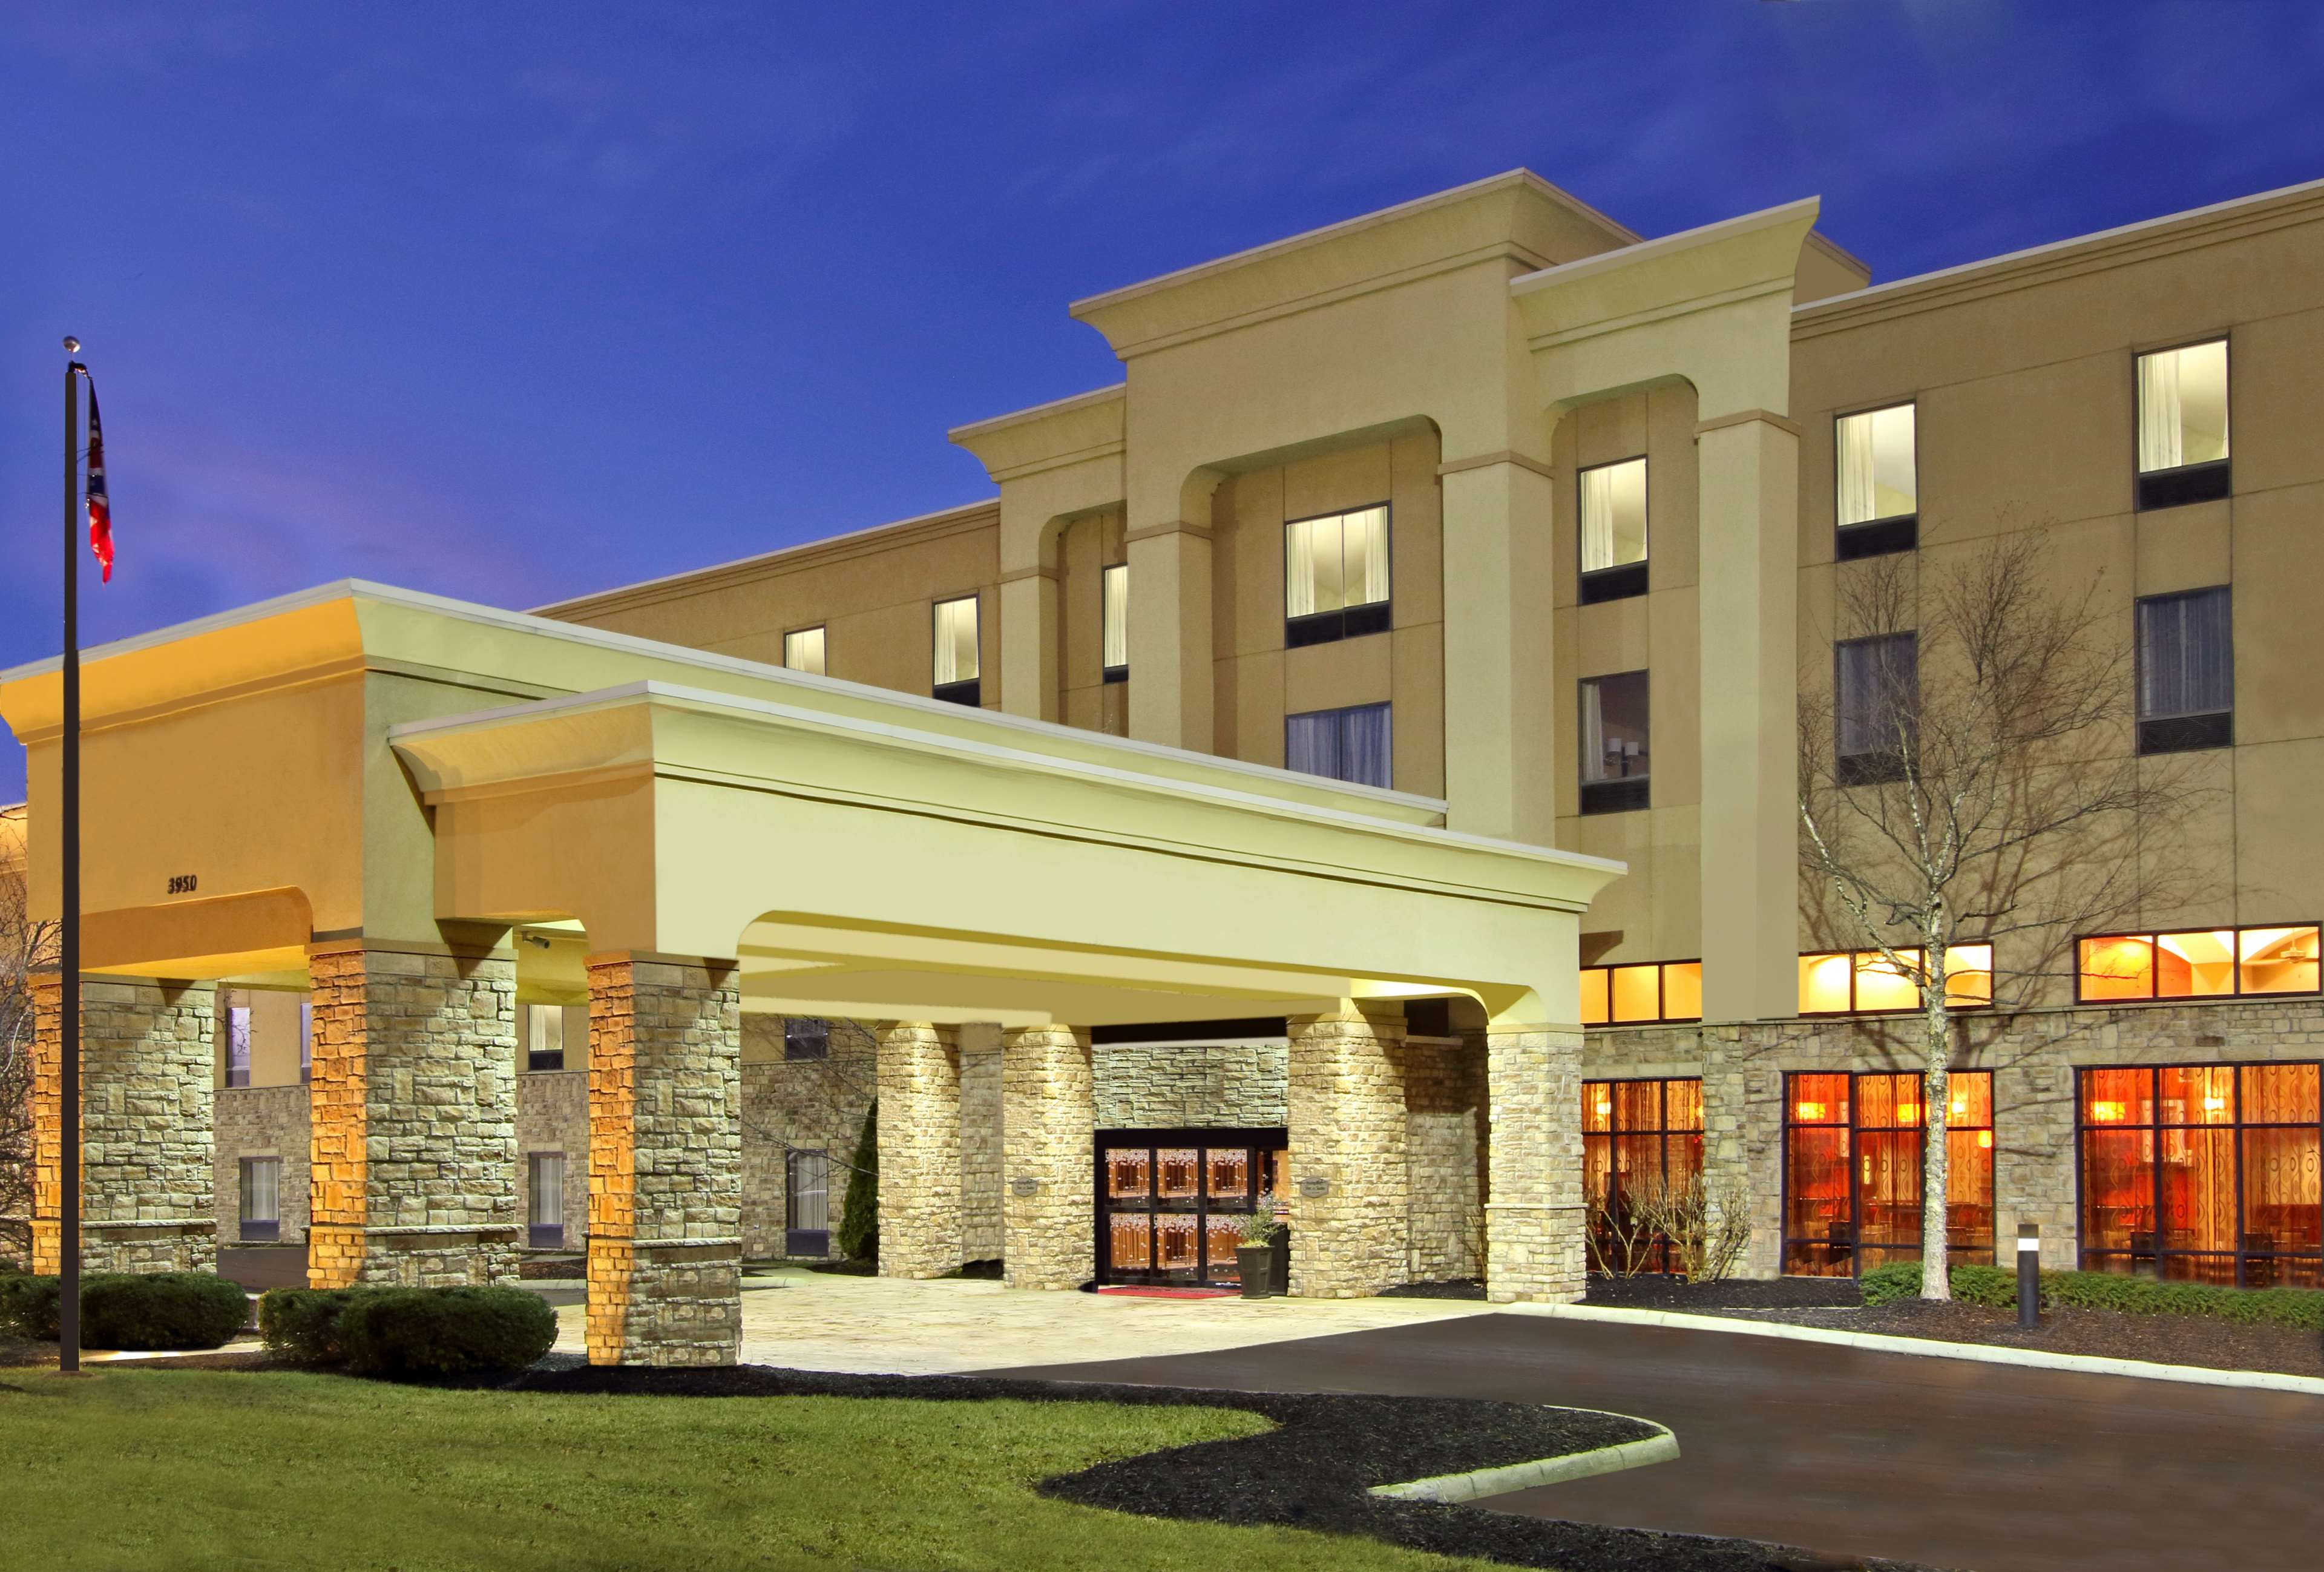 Hampton Inn & Suites Columbus Hilliard image 0